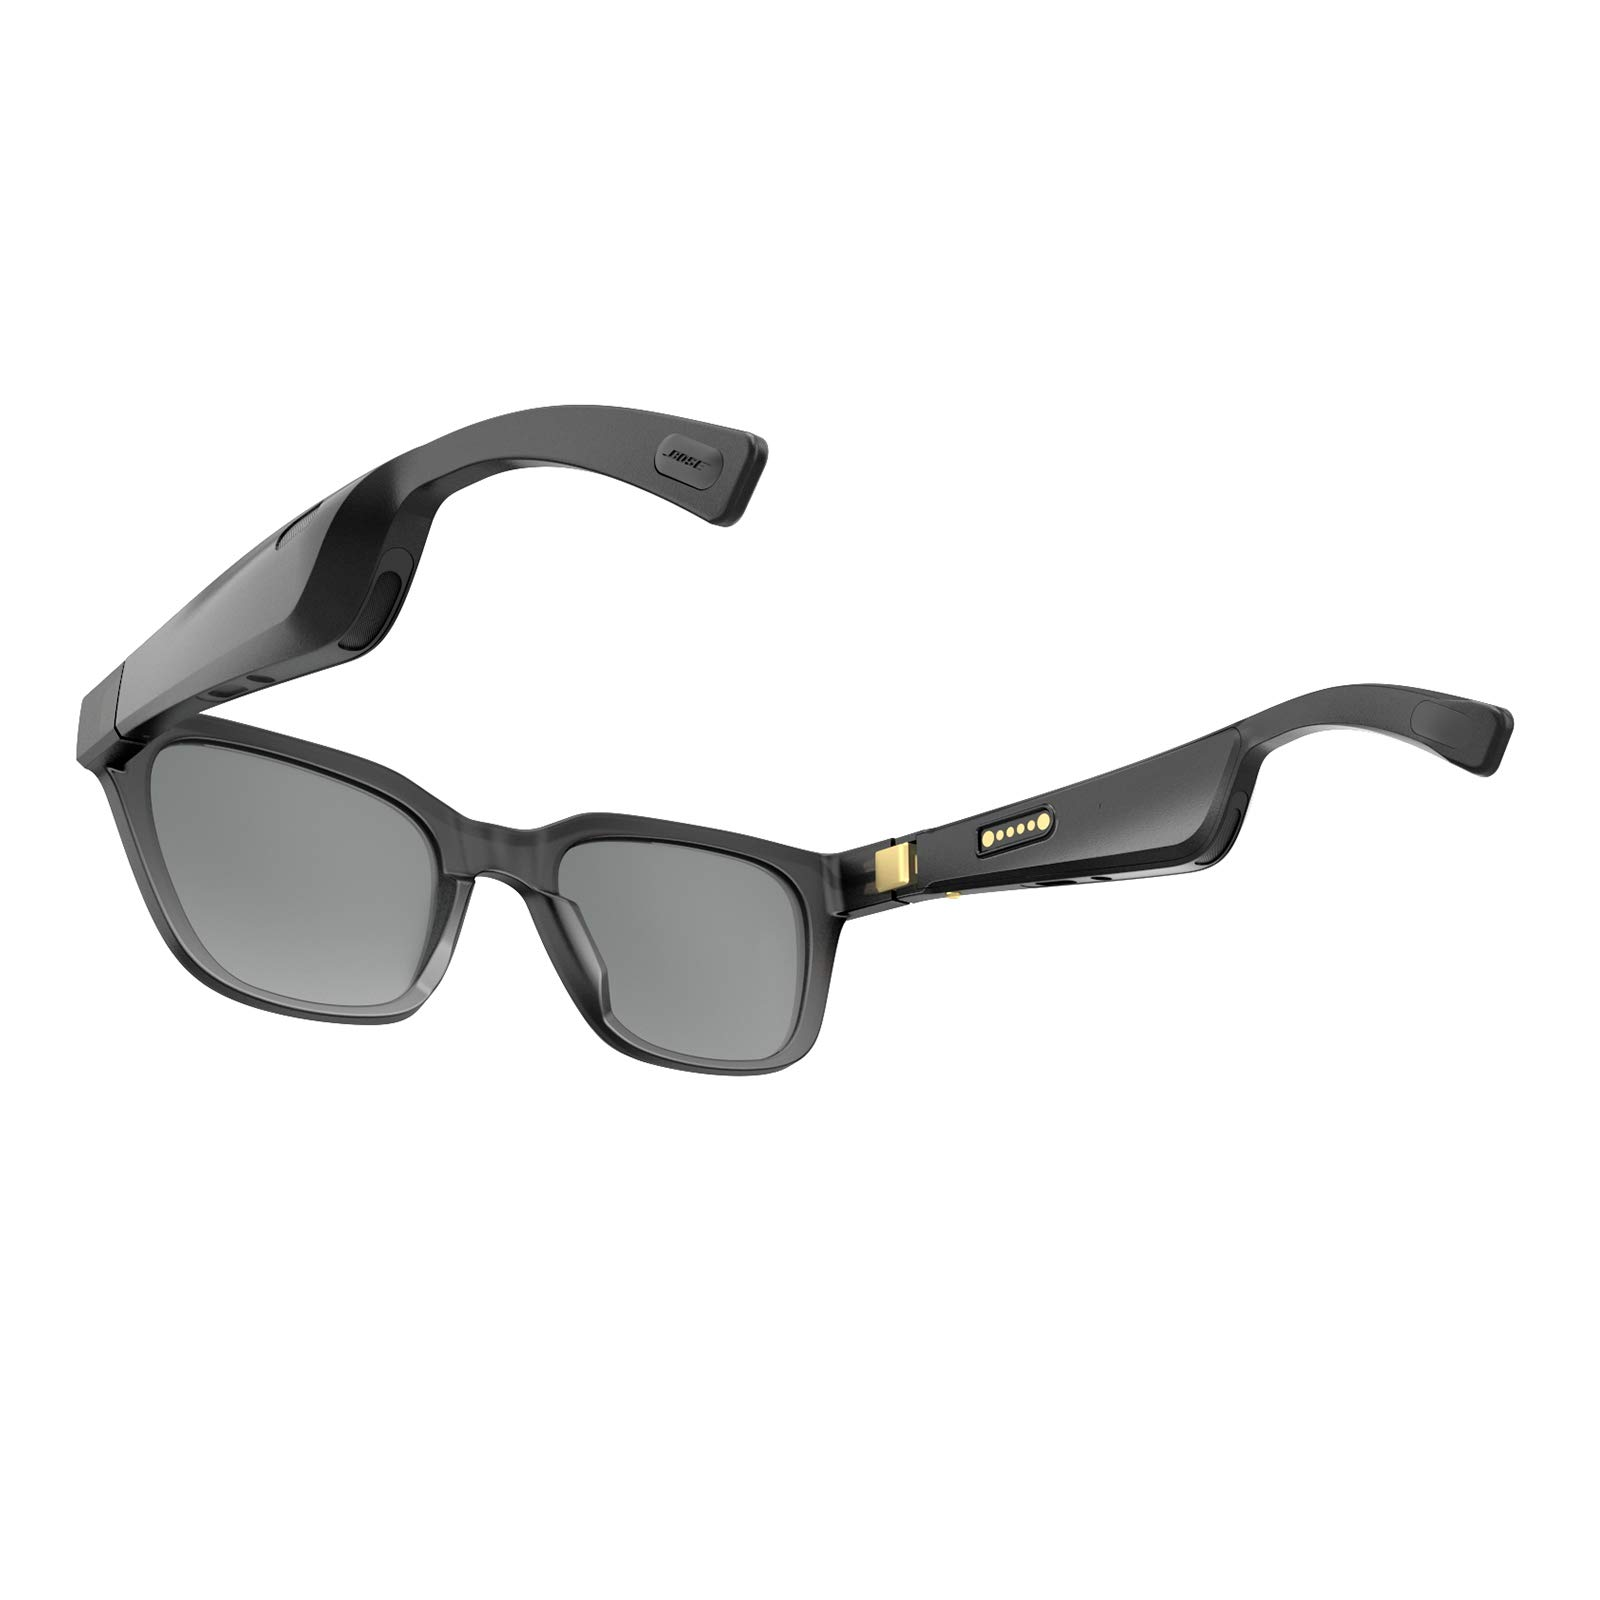 Bose Frames Audio Sunglasses, Alto, Black - with Bluetooth Connectivity by Bose (Image #4)